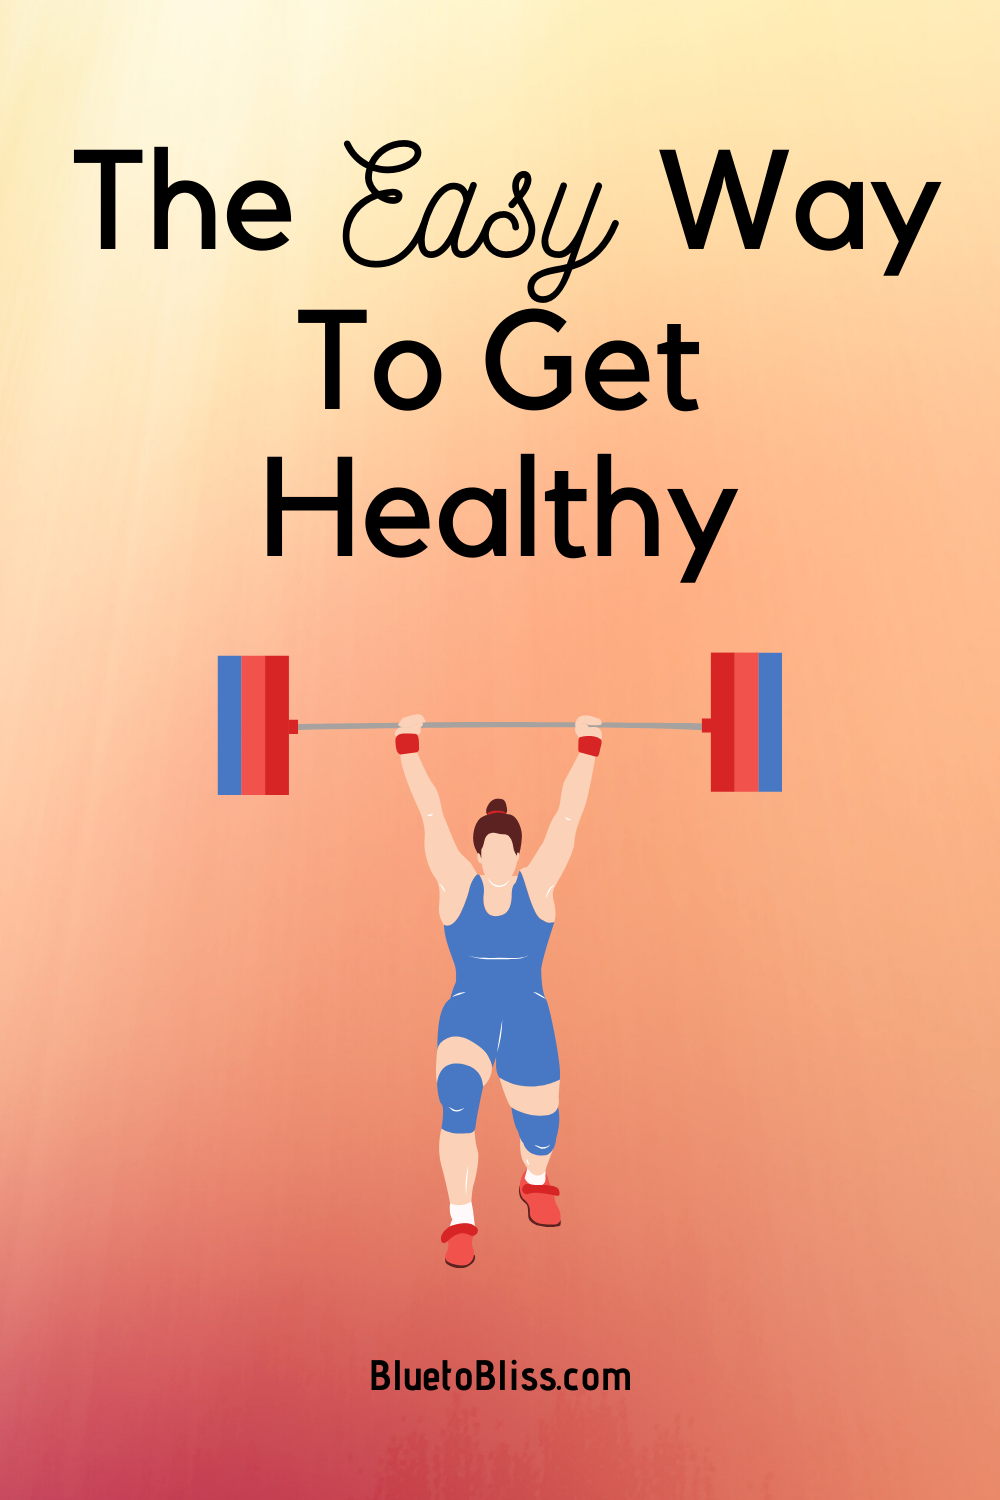 The only reason you need to start living a healthy lifestyle is that it makes you feel incredible.  And adopting a minimalist approach makes it easy.    #minimlisthealth #healthylifestyle #healthylifetips #healthylivingforbeginners #healthylivingtips #healthylifestyletips #healthylifestylemotivationquotes #minimalistlifestyle #minimalistlifestylesimpleliving #minimalistlifestyleinspiration #puttinghealthfirst #puttinghealthatthetop #puttingyourhealthfirstquotes #improvementalhealth #mentalhealth